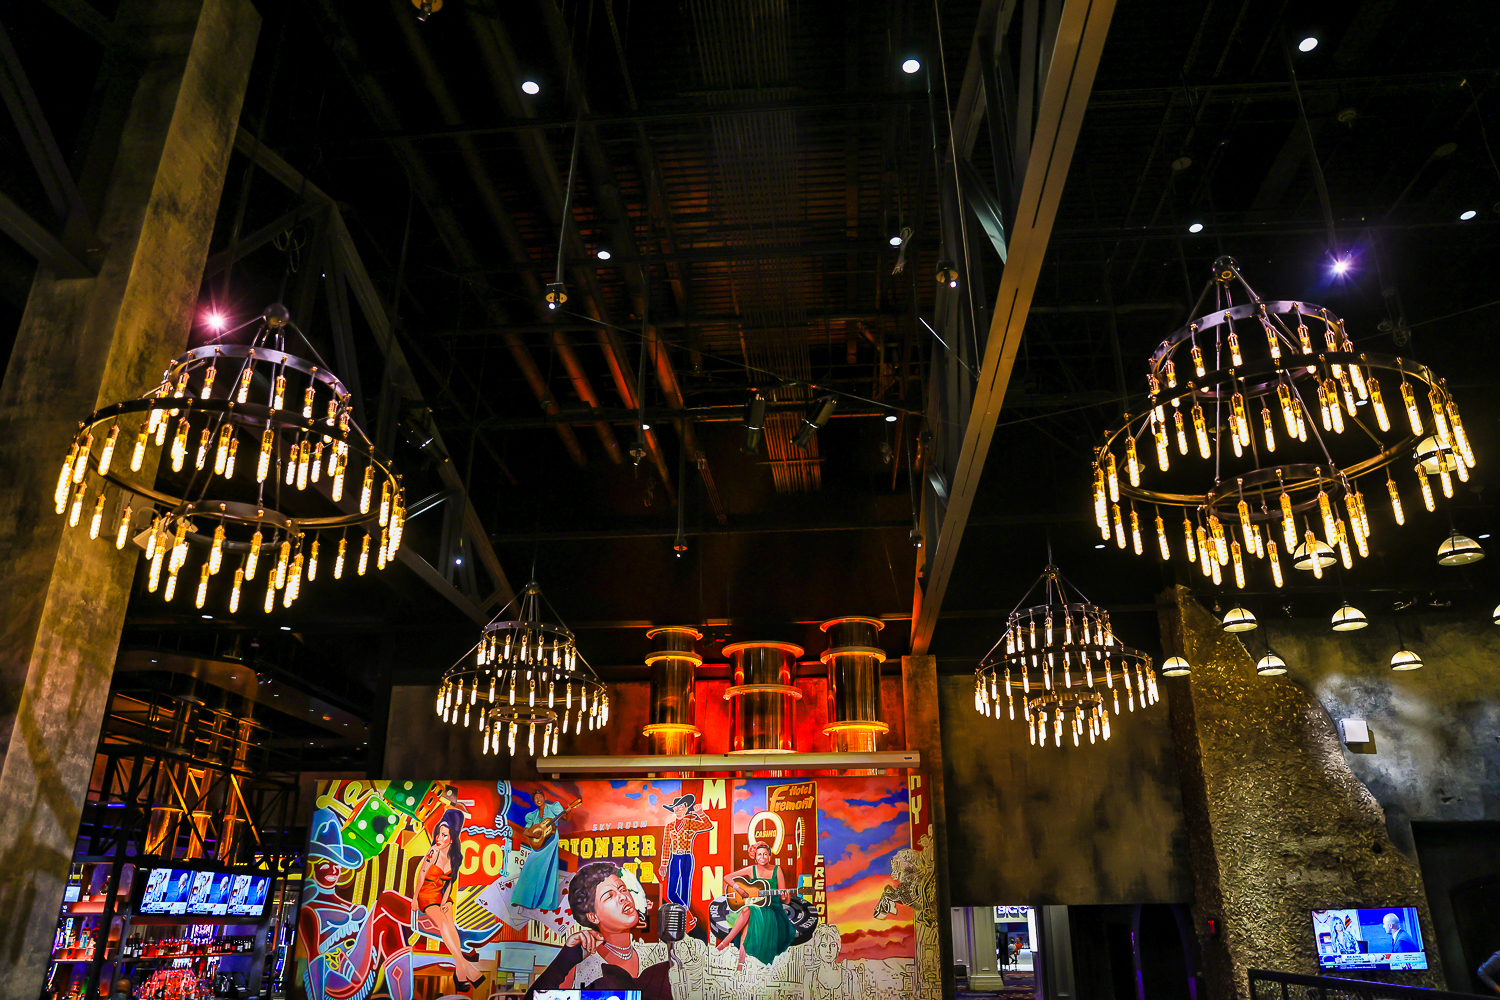 A colorful mural with chandeliers on either side at House of Blues